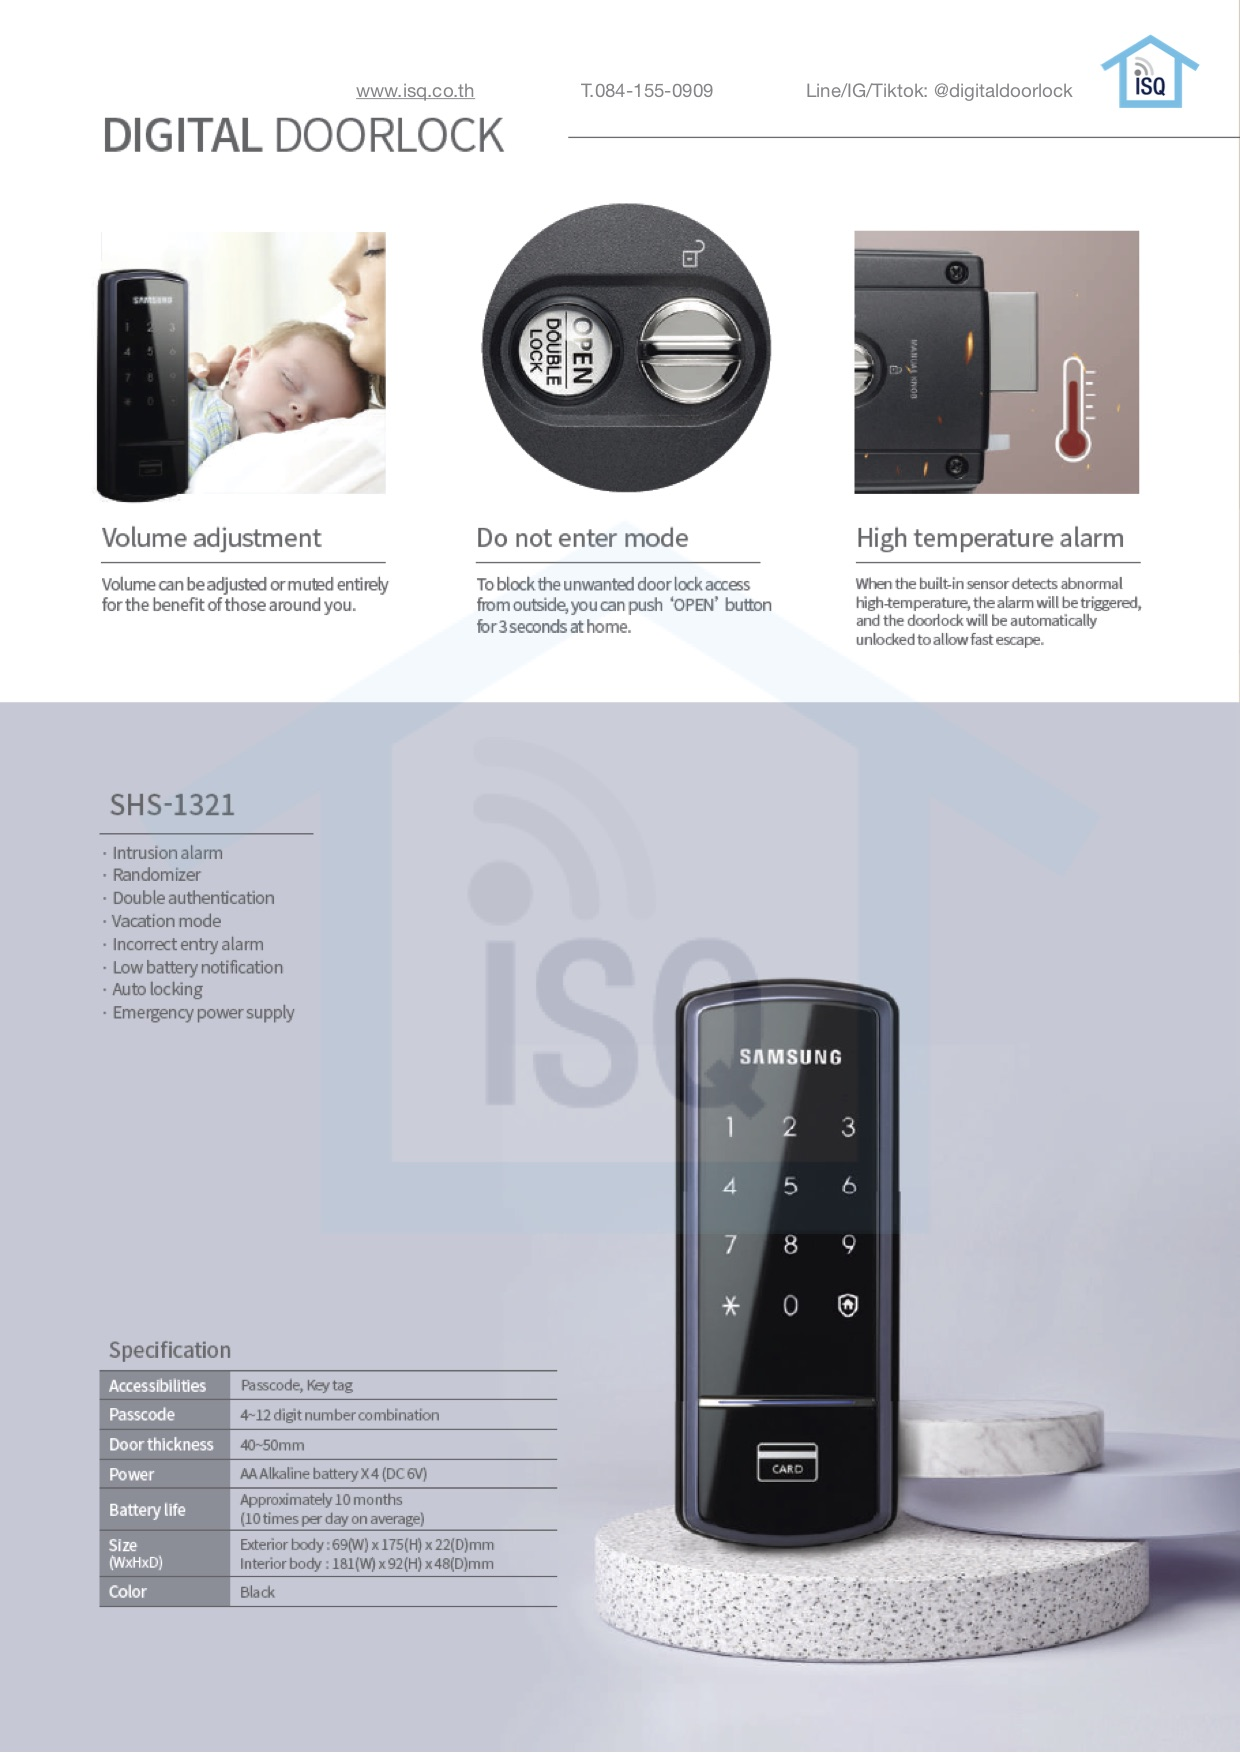 Samsung smart digital door lock SHS-1321